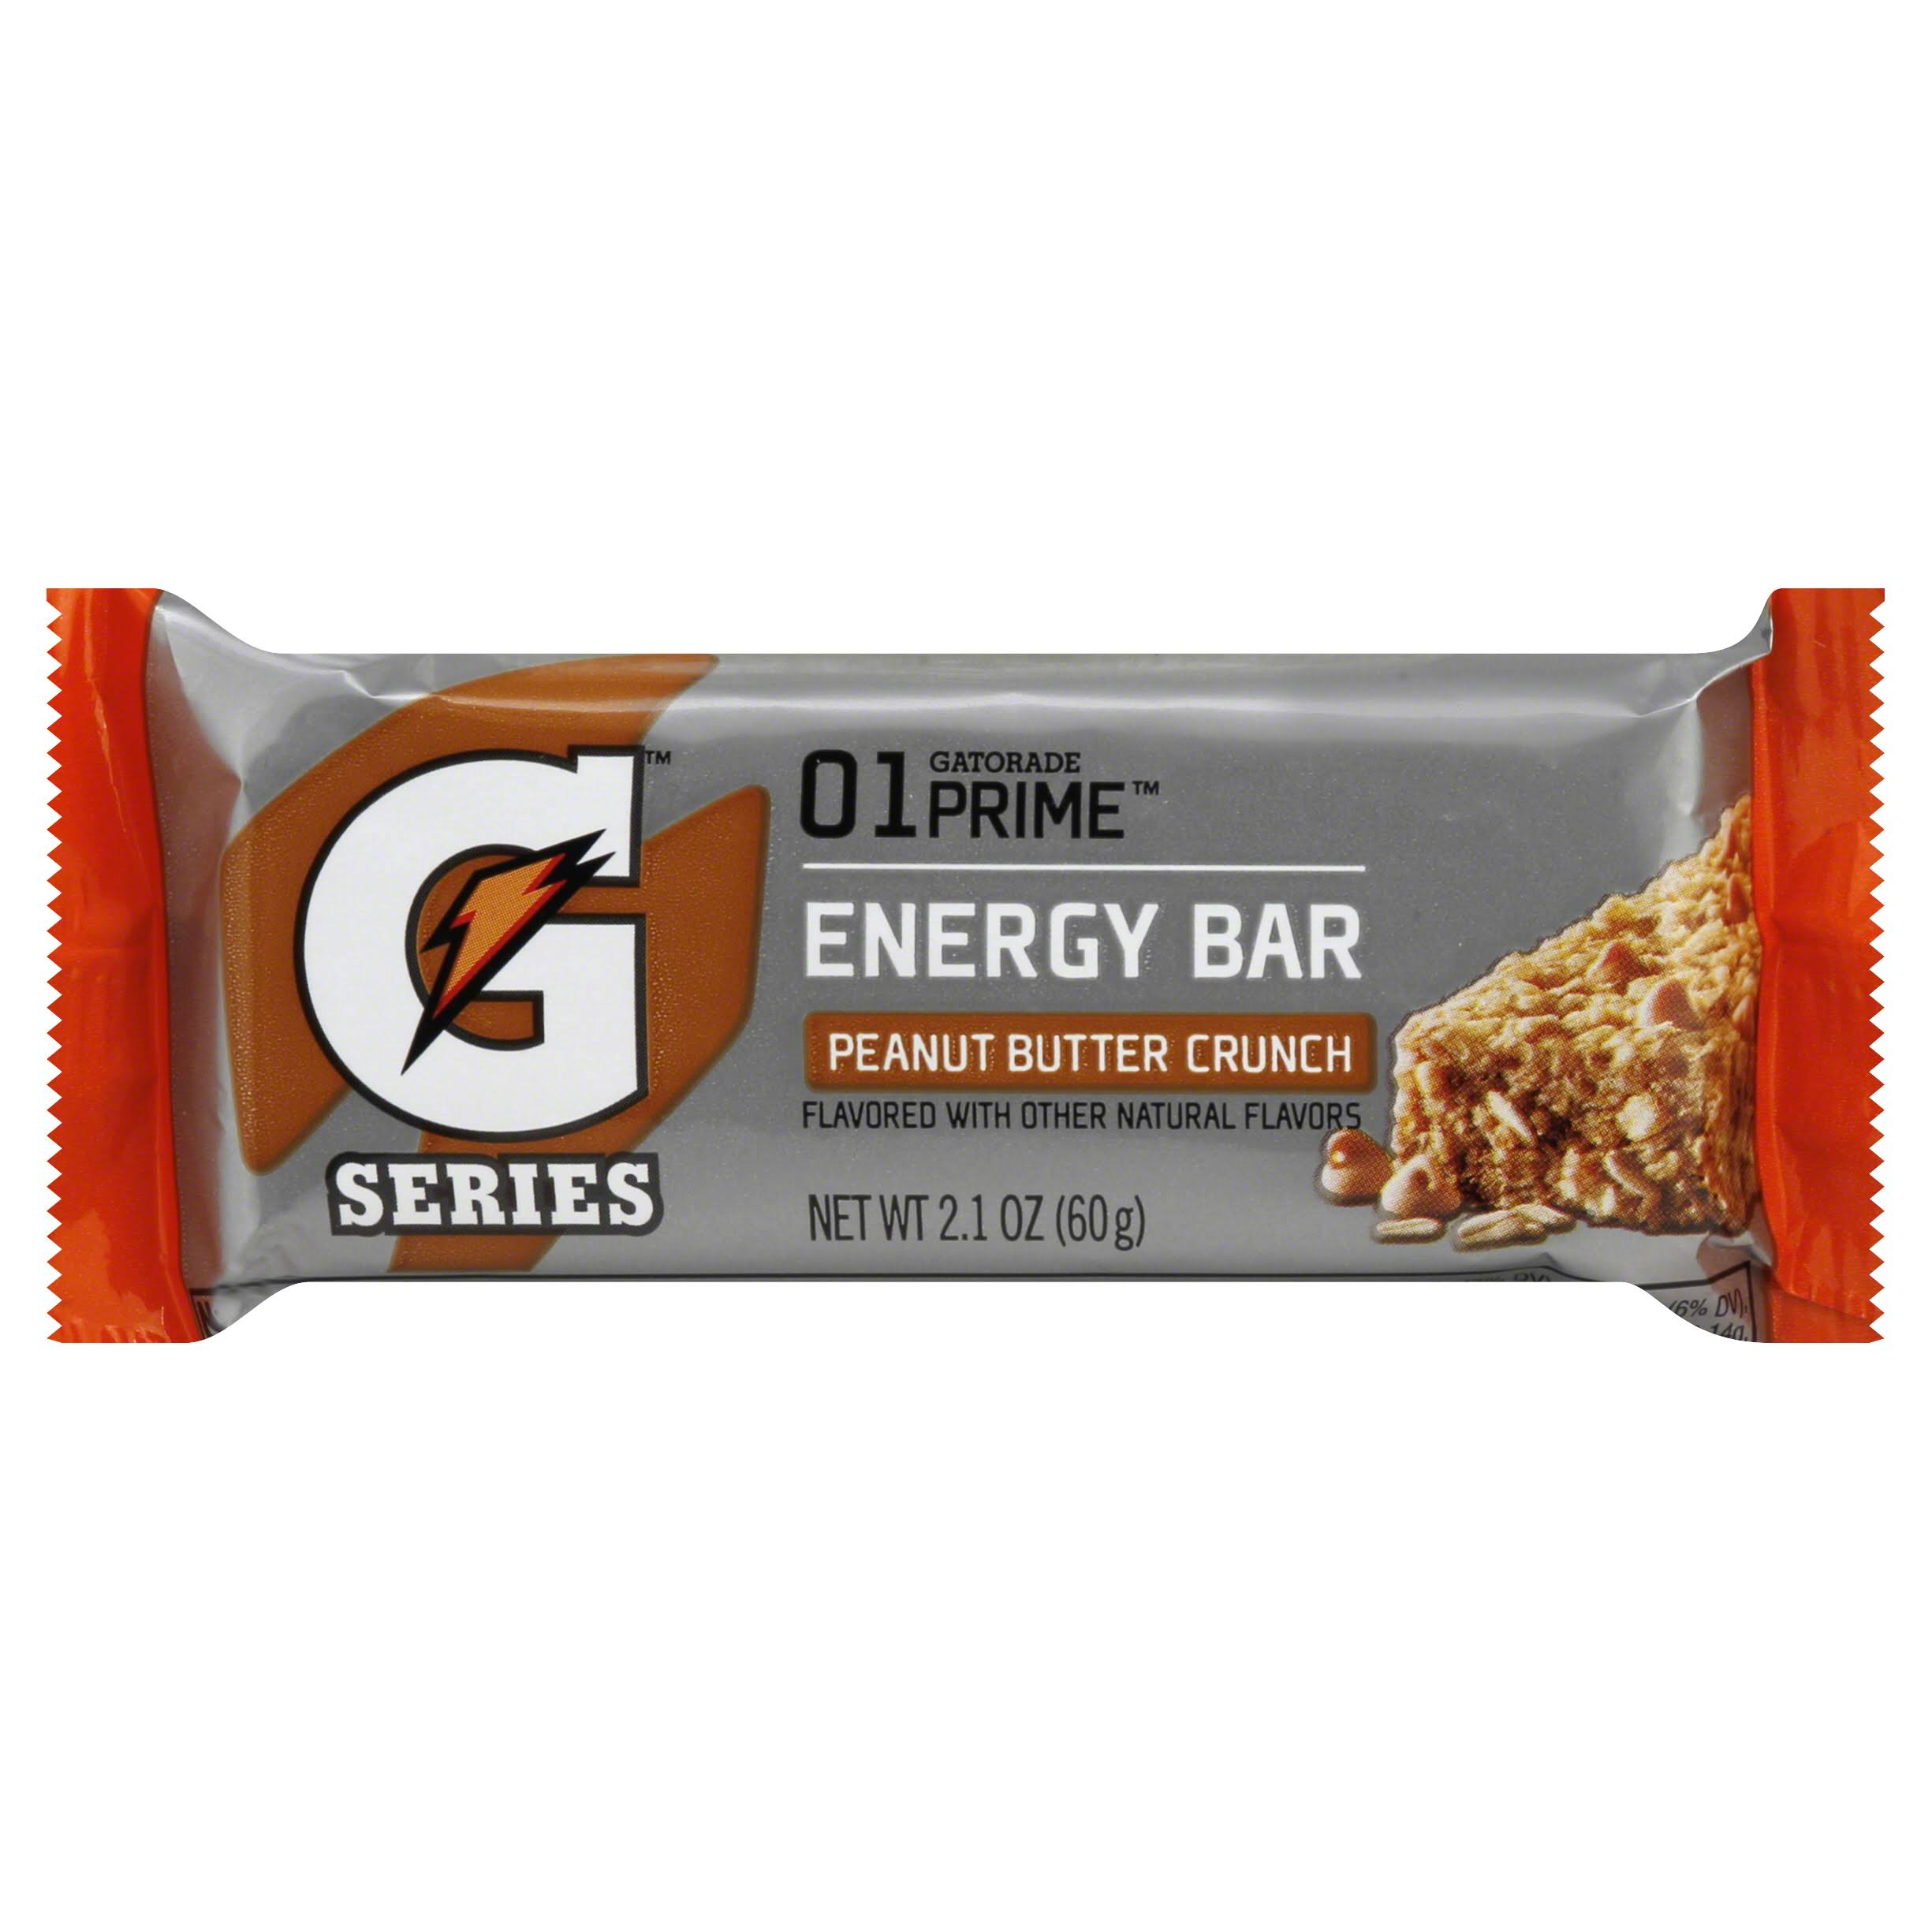 Gatorade G Series Energy Bar, 01 Prime, Peanut Butter Crunch - 2.1 oz